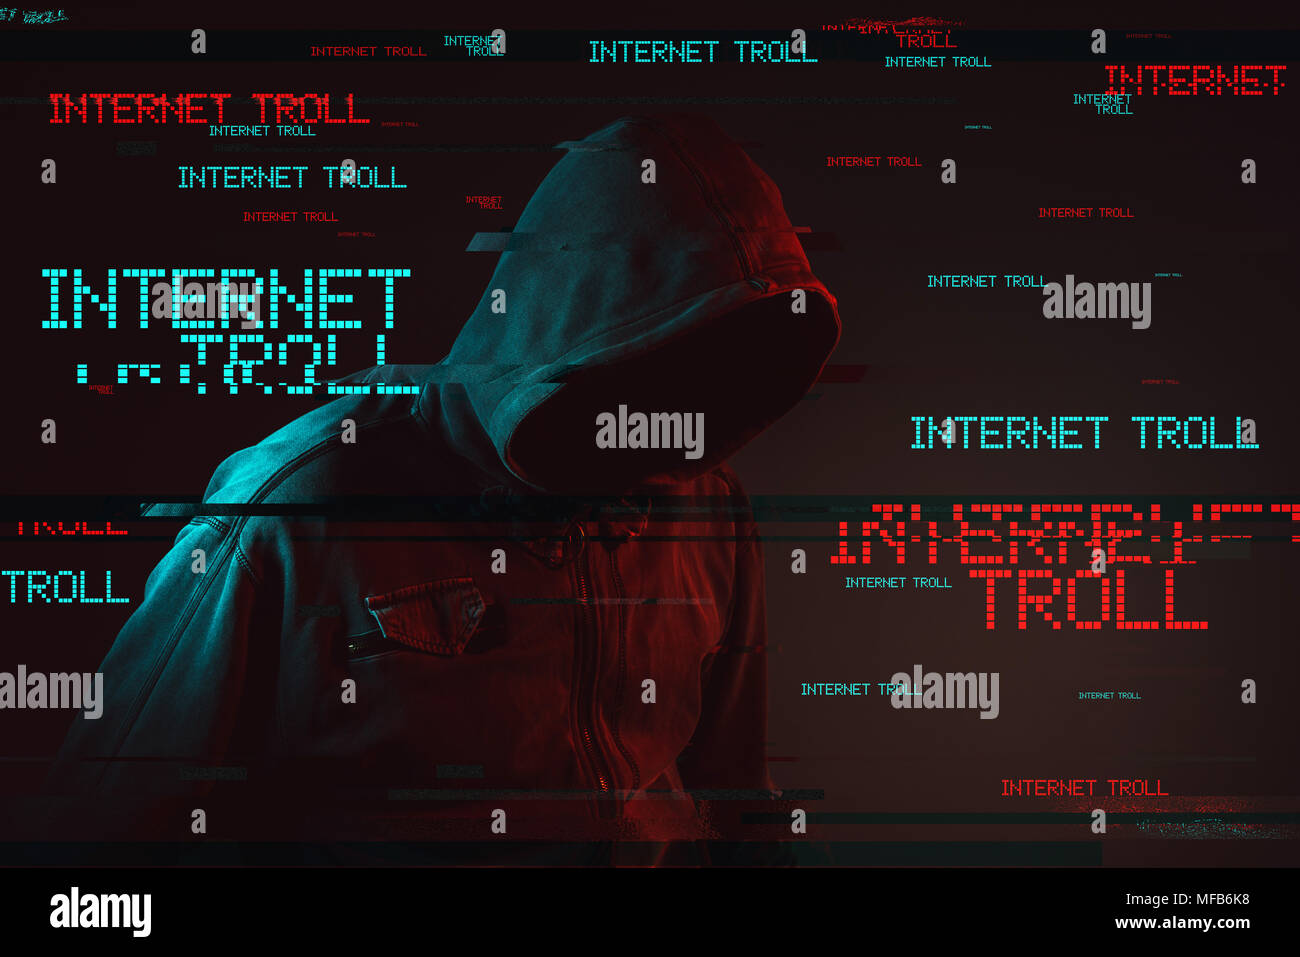 Internet troll concept with faceless hooded male person, low key red and blue lit image and digital glitch effect - Stock Image